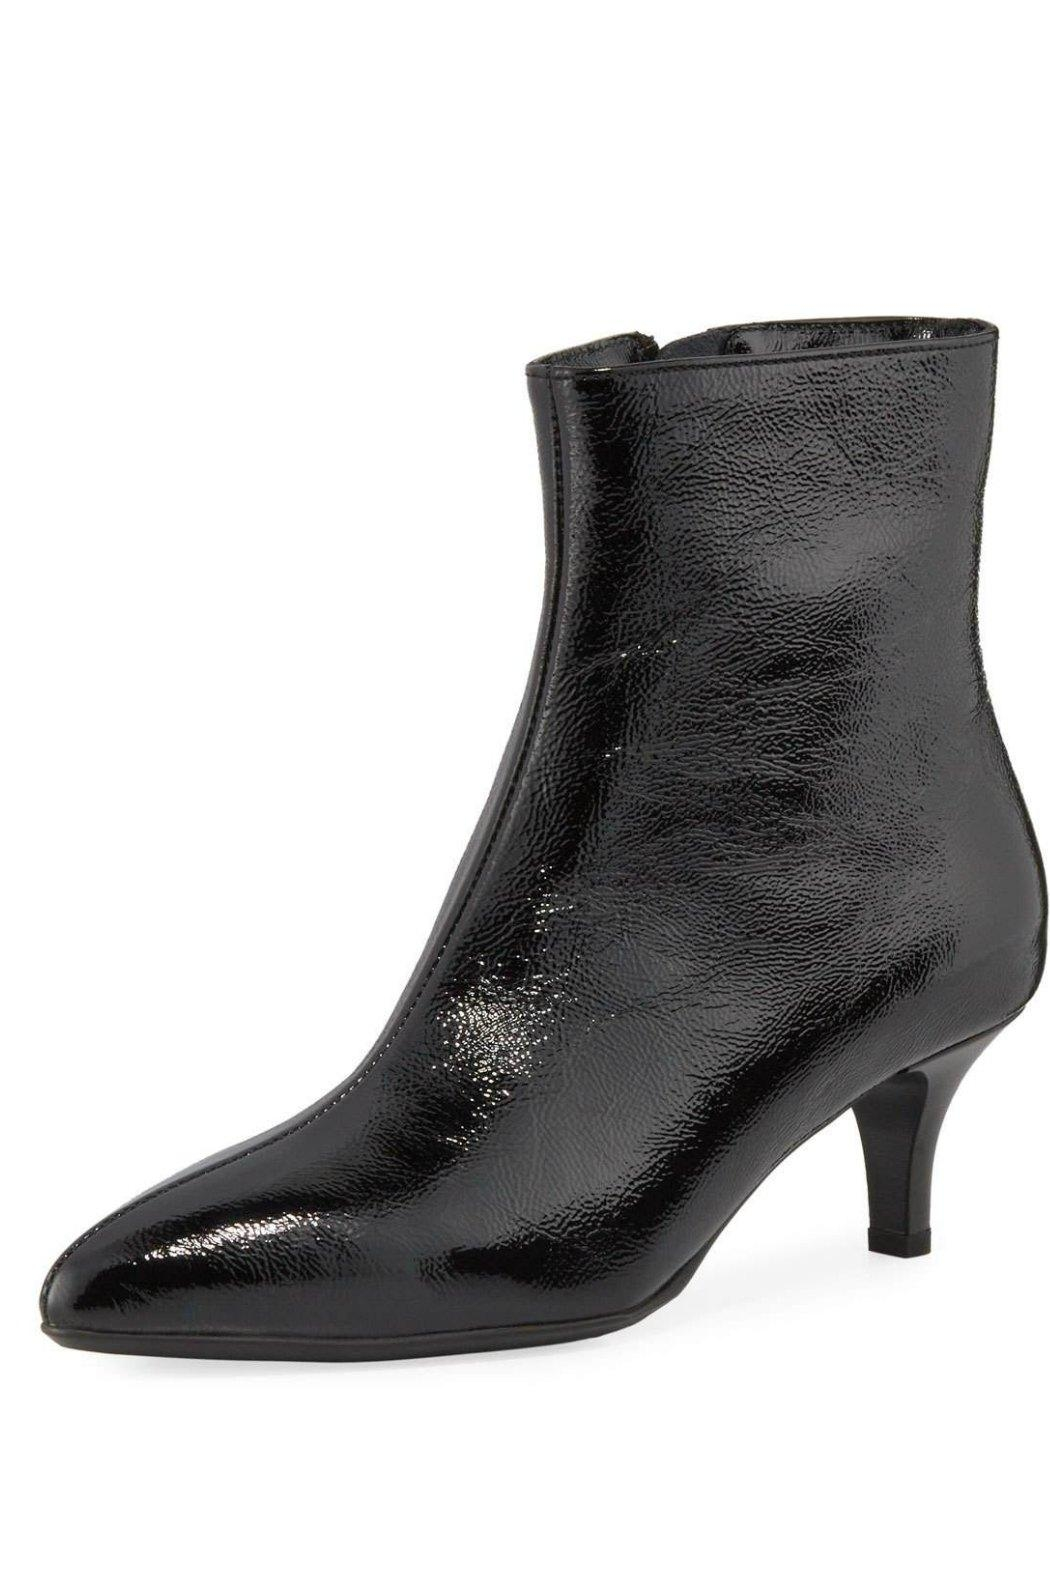 La Canadienne Davis Kitten-Heel Boot - Main Image